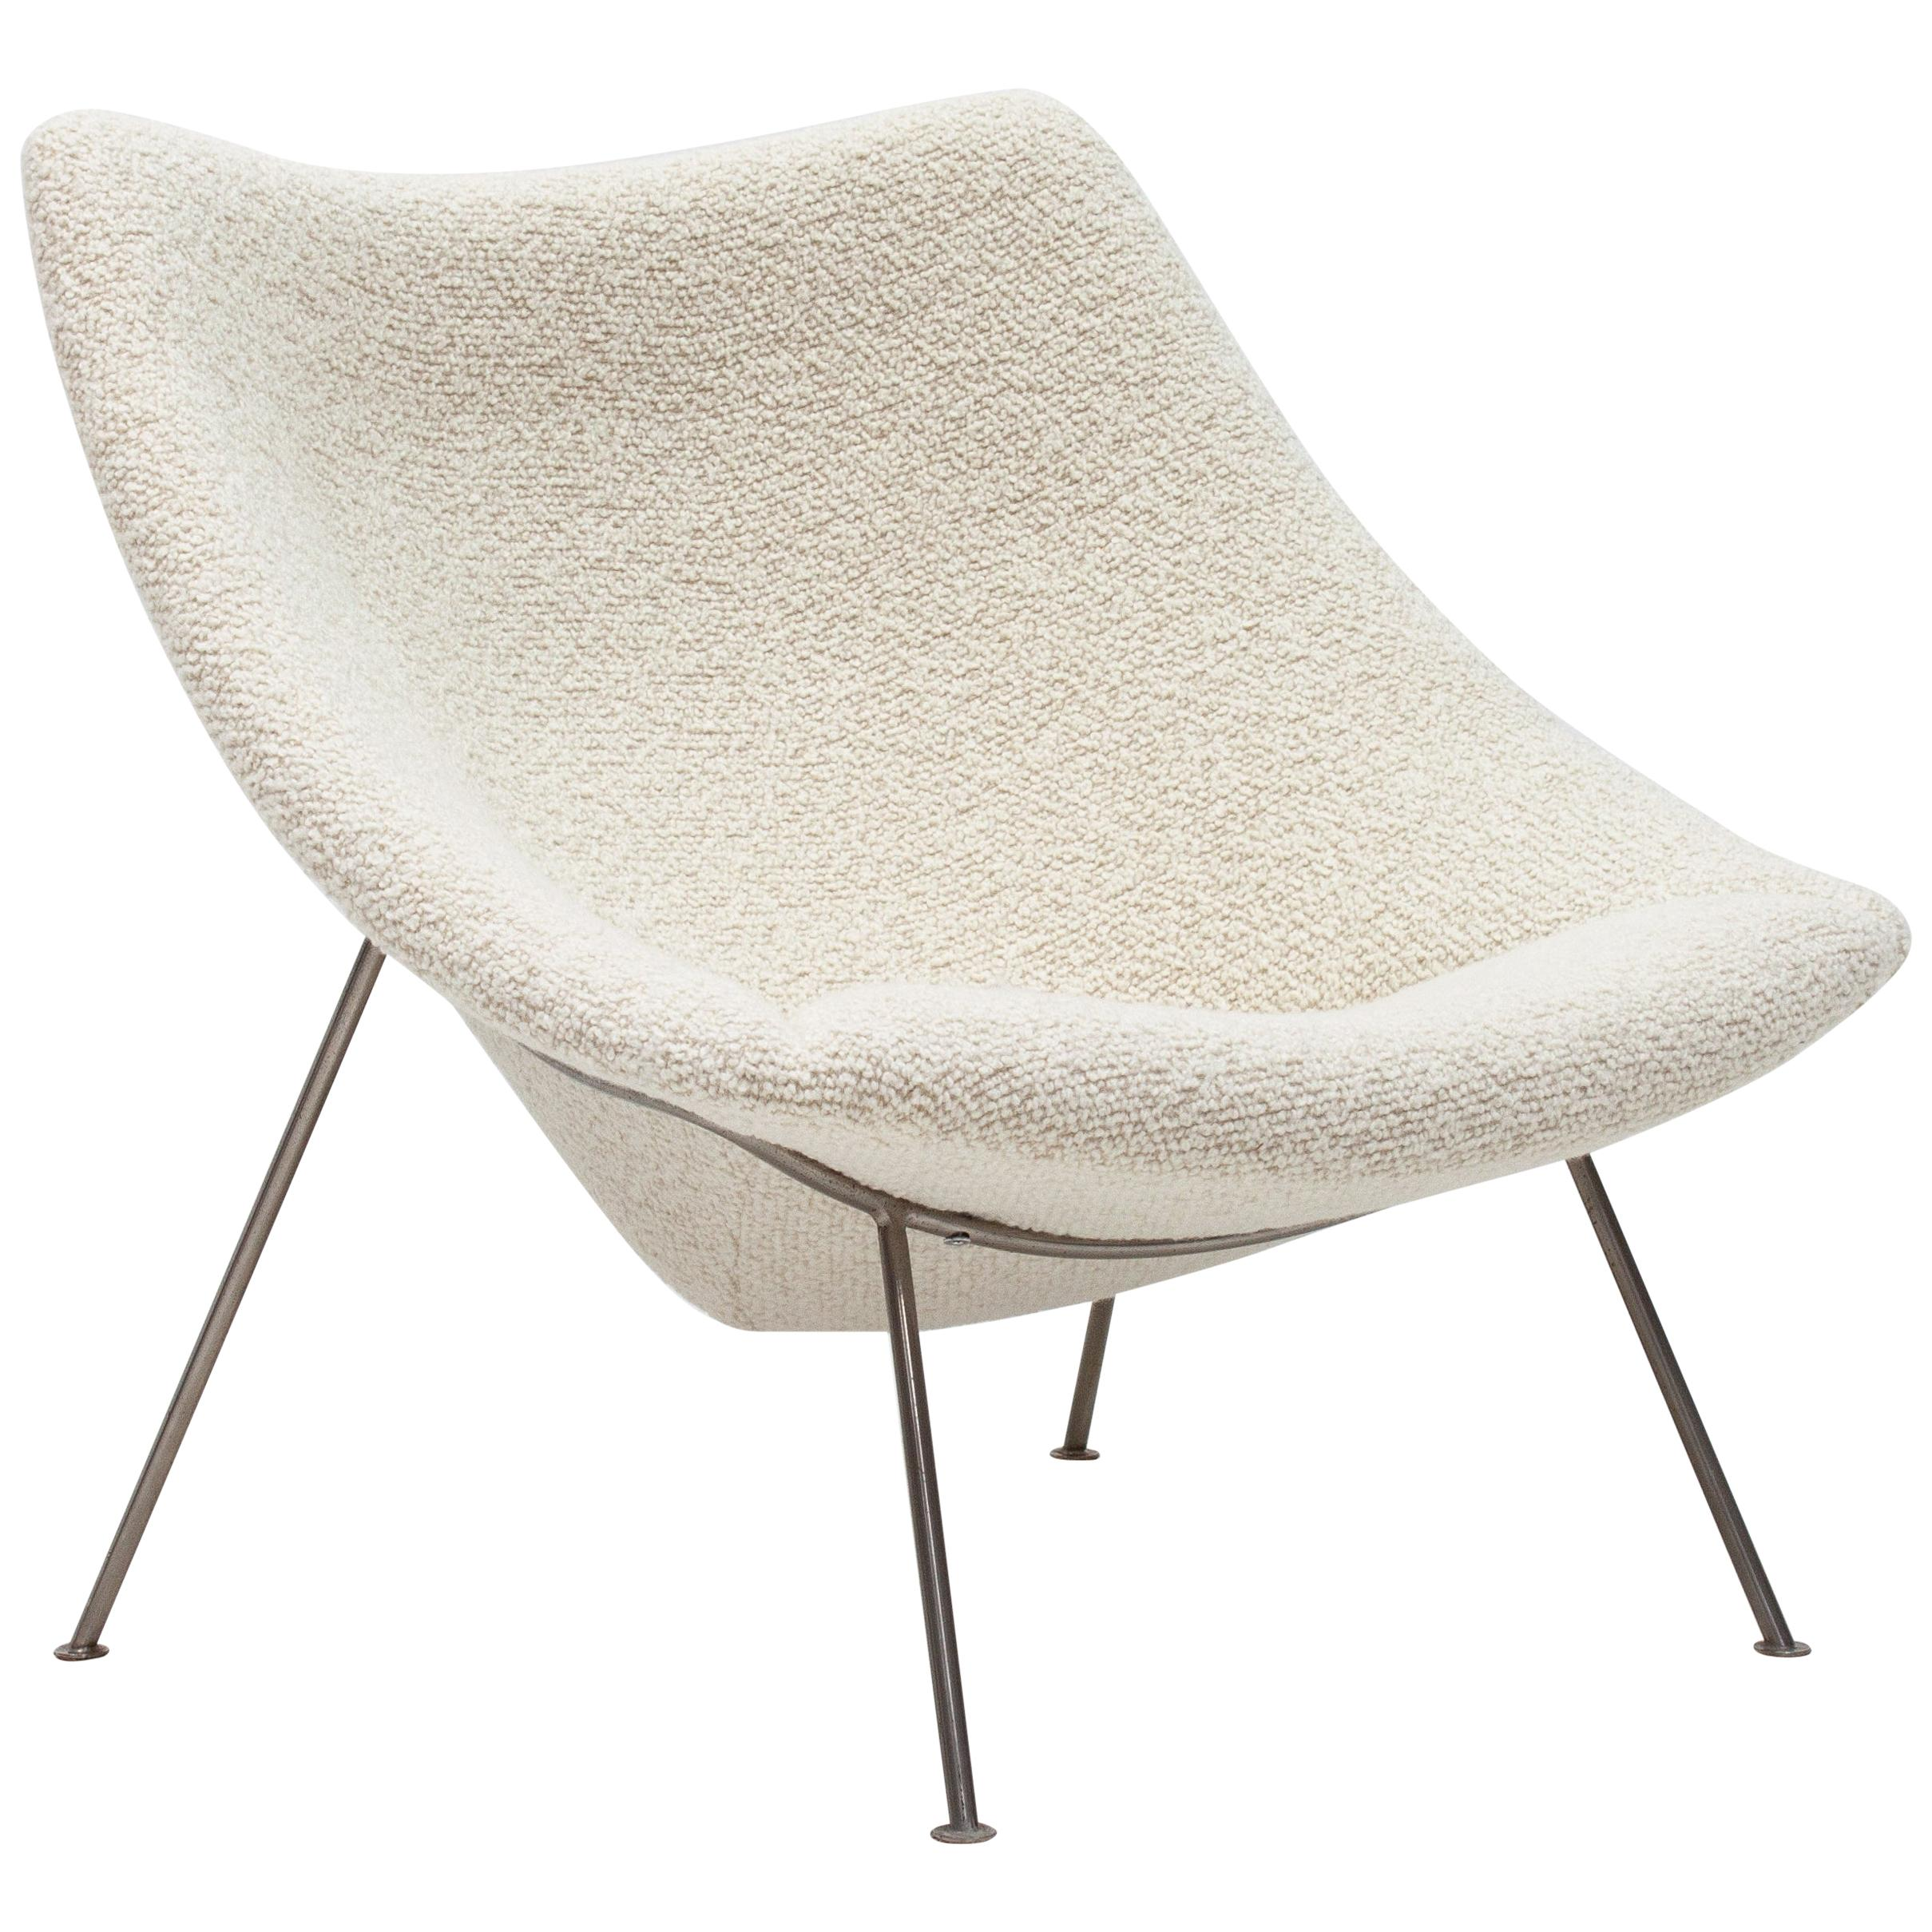 Oyster Chair